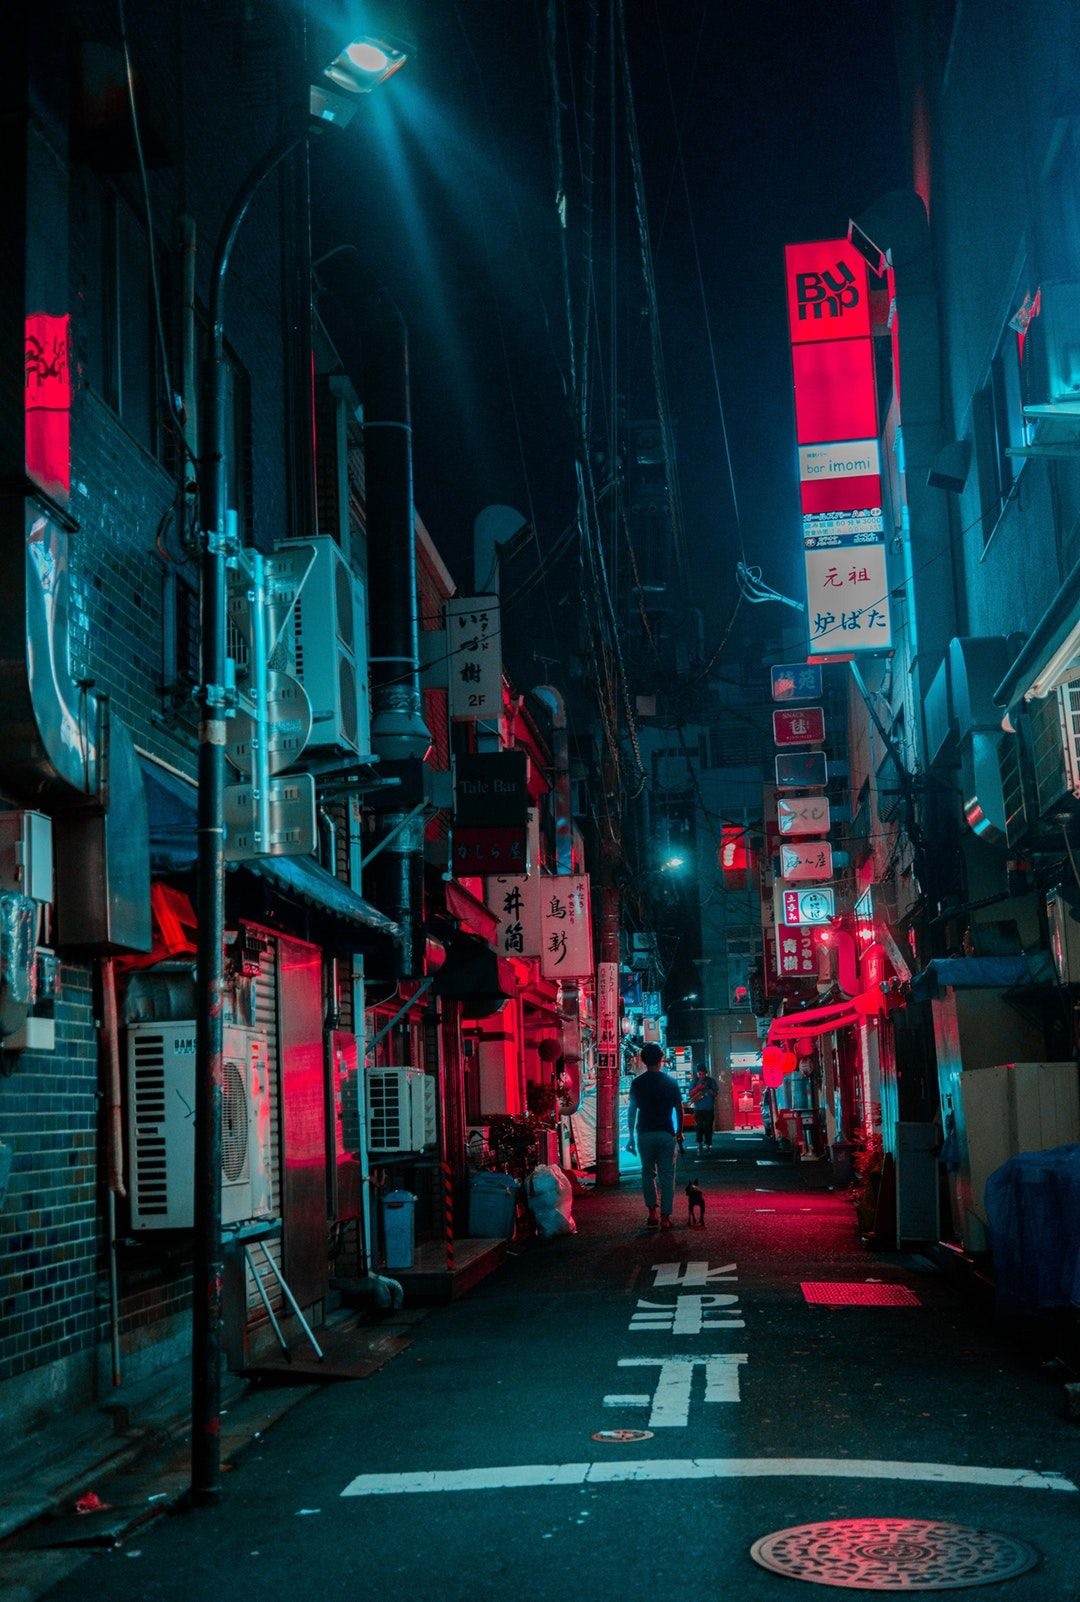 Download This Free Hd Photo Of Street Person Cyberpunk And Tokyo In Japan By Steve Roe Steveroe Fotografi Kota Fotografi Jalanan Ilustrasi Alam